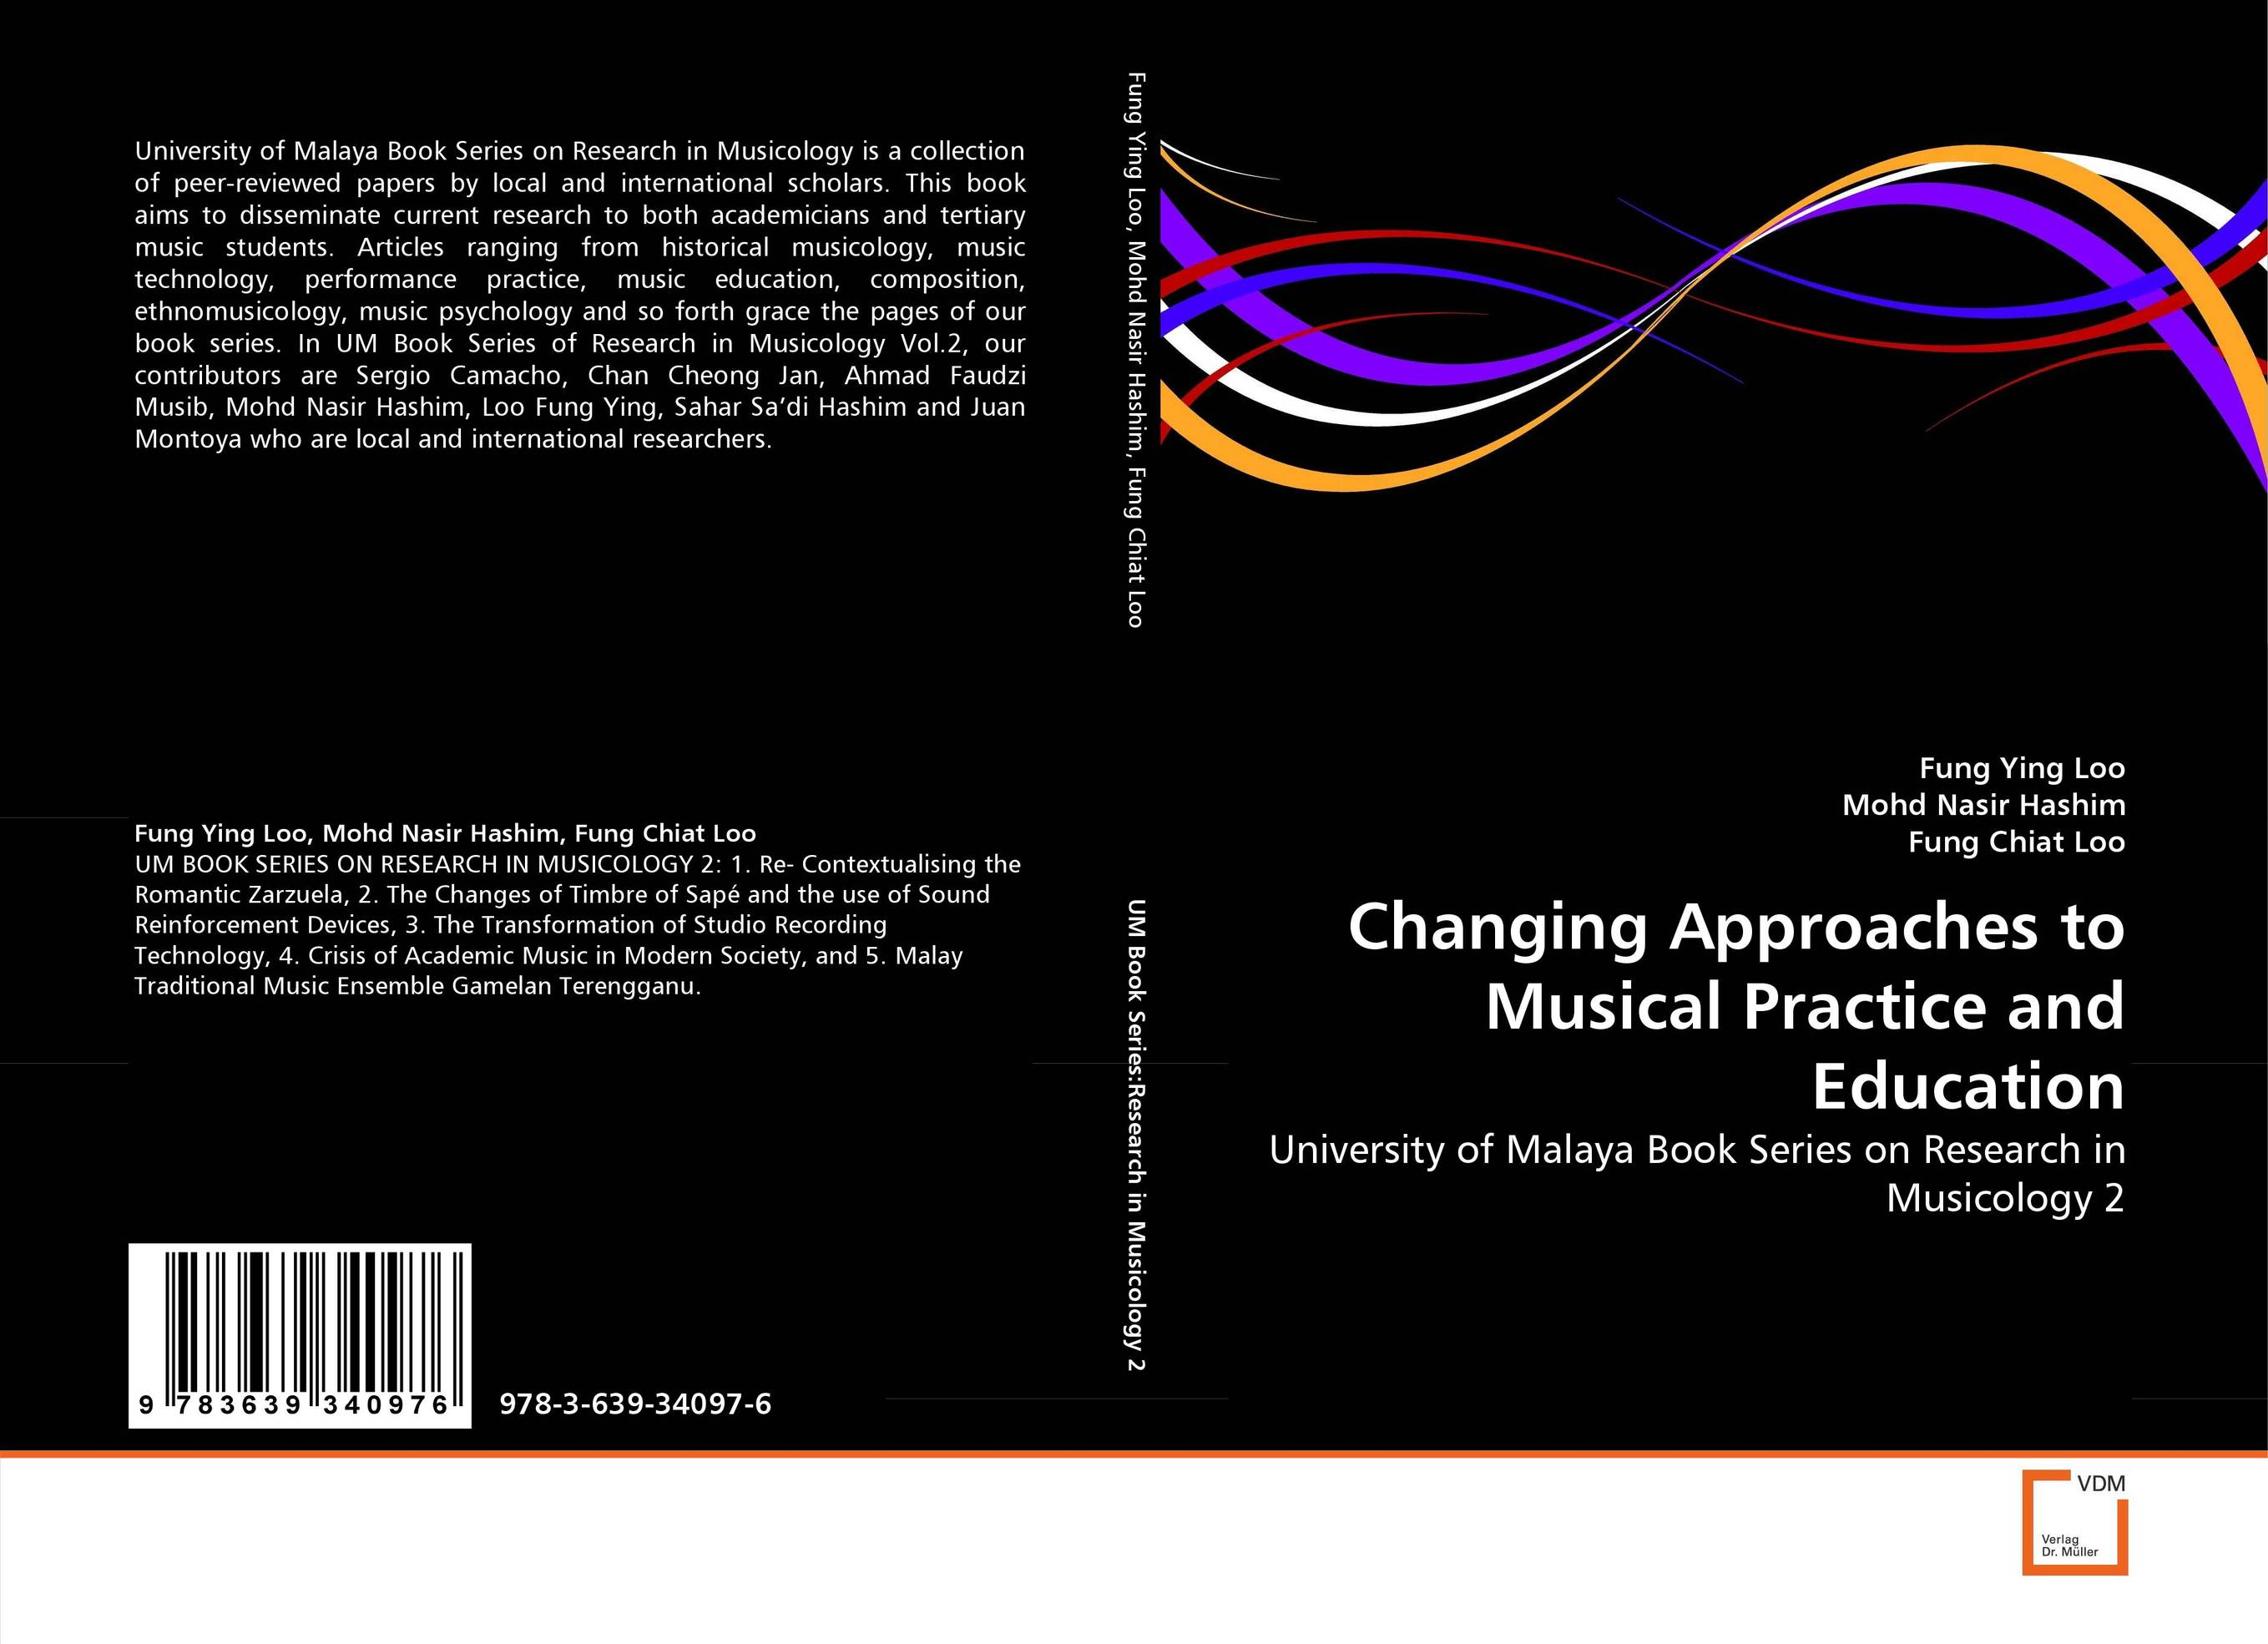 Changing Approaches to Musical Practice and Education spirituals and gospel music performance practice